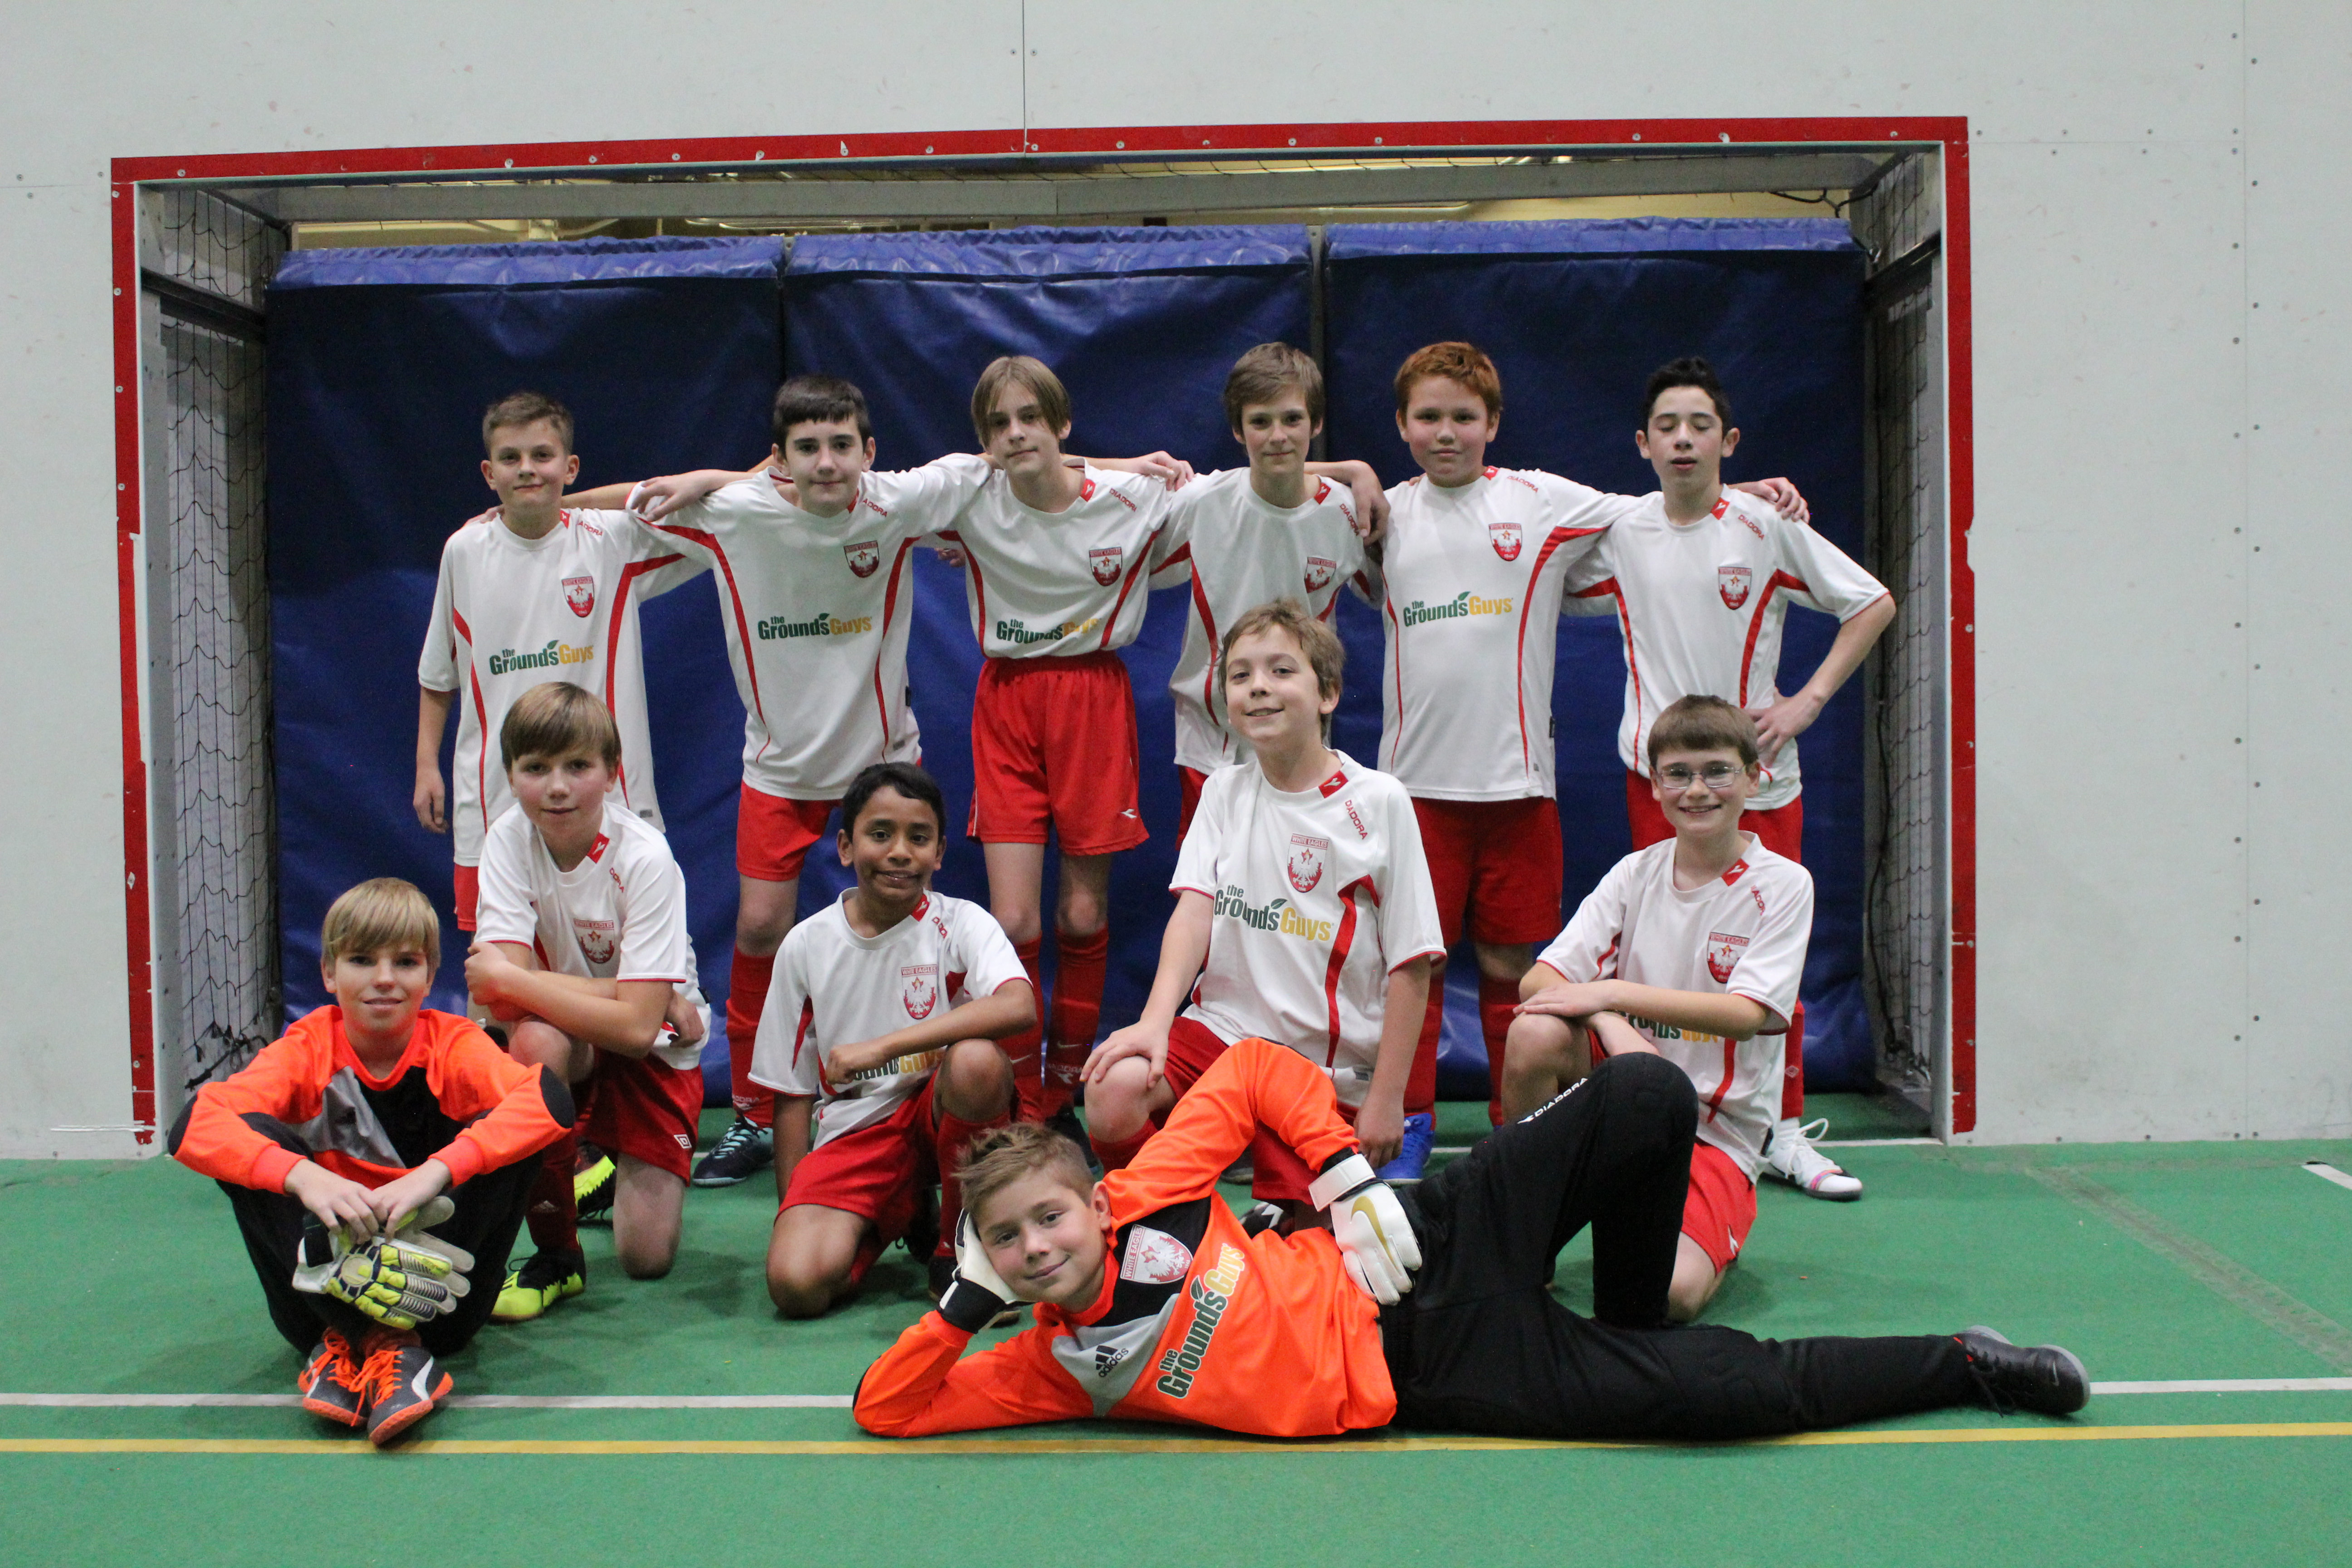 Great start to the indoor season by U13 team!